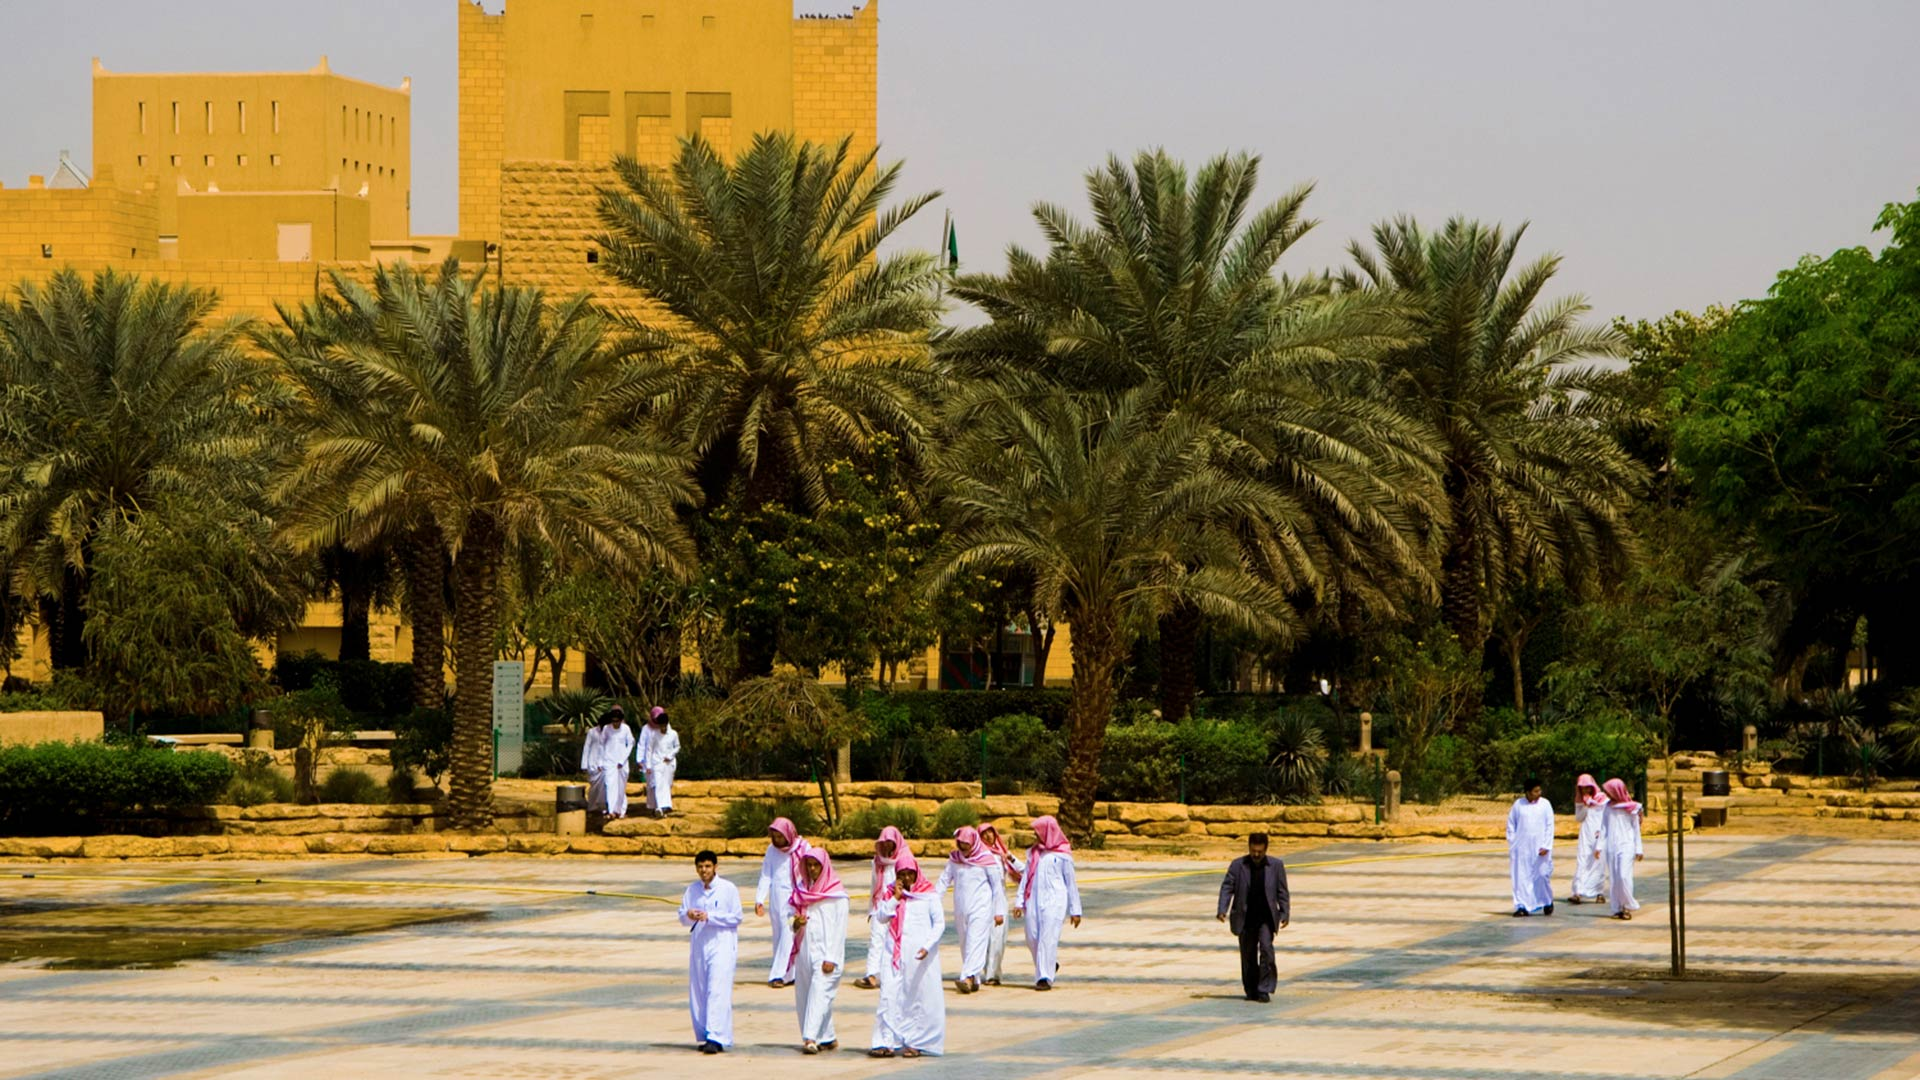 Students in front of National Museum in Riyadh, Saudi Arabia